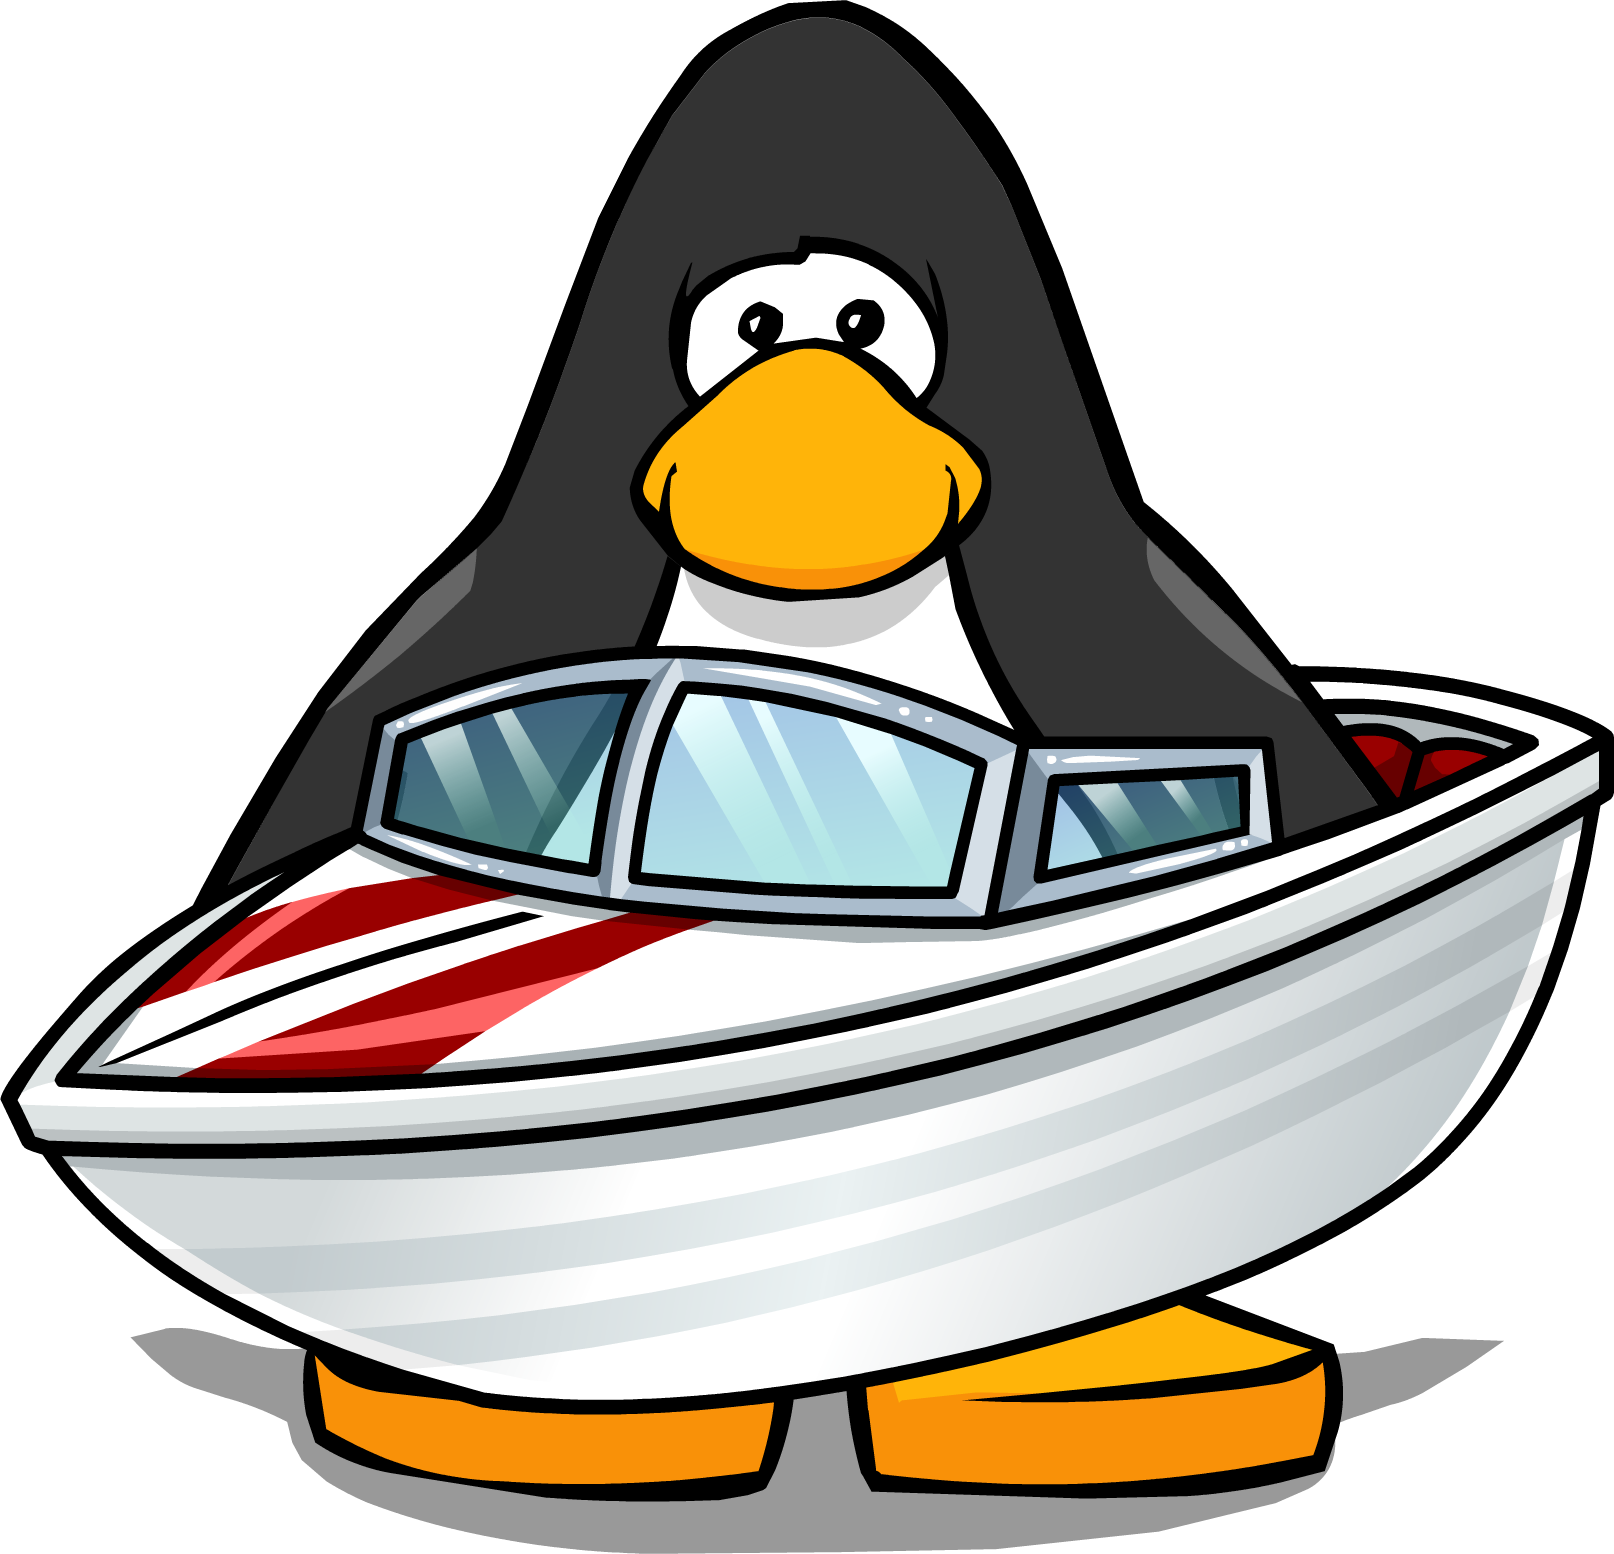 Cartoon boat png. Image speed club penguin